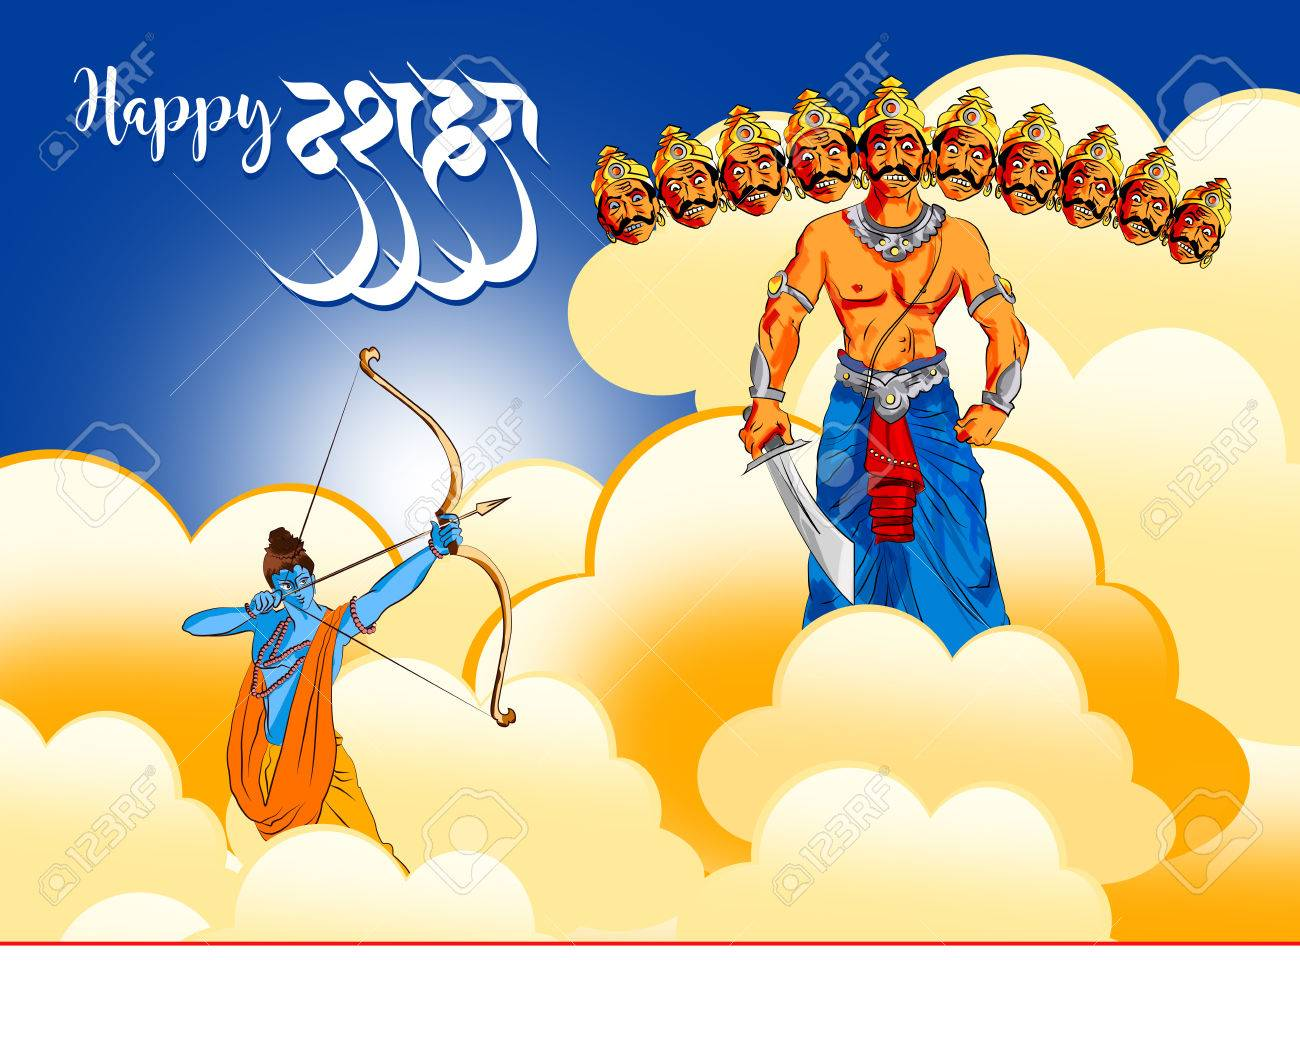 Antique Stock Illustration Of Happy Dussehra Greeting Card